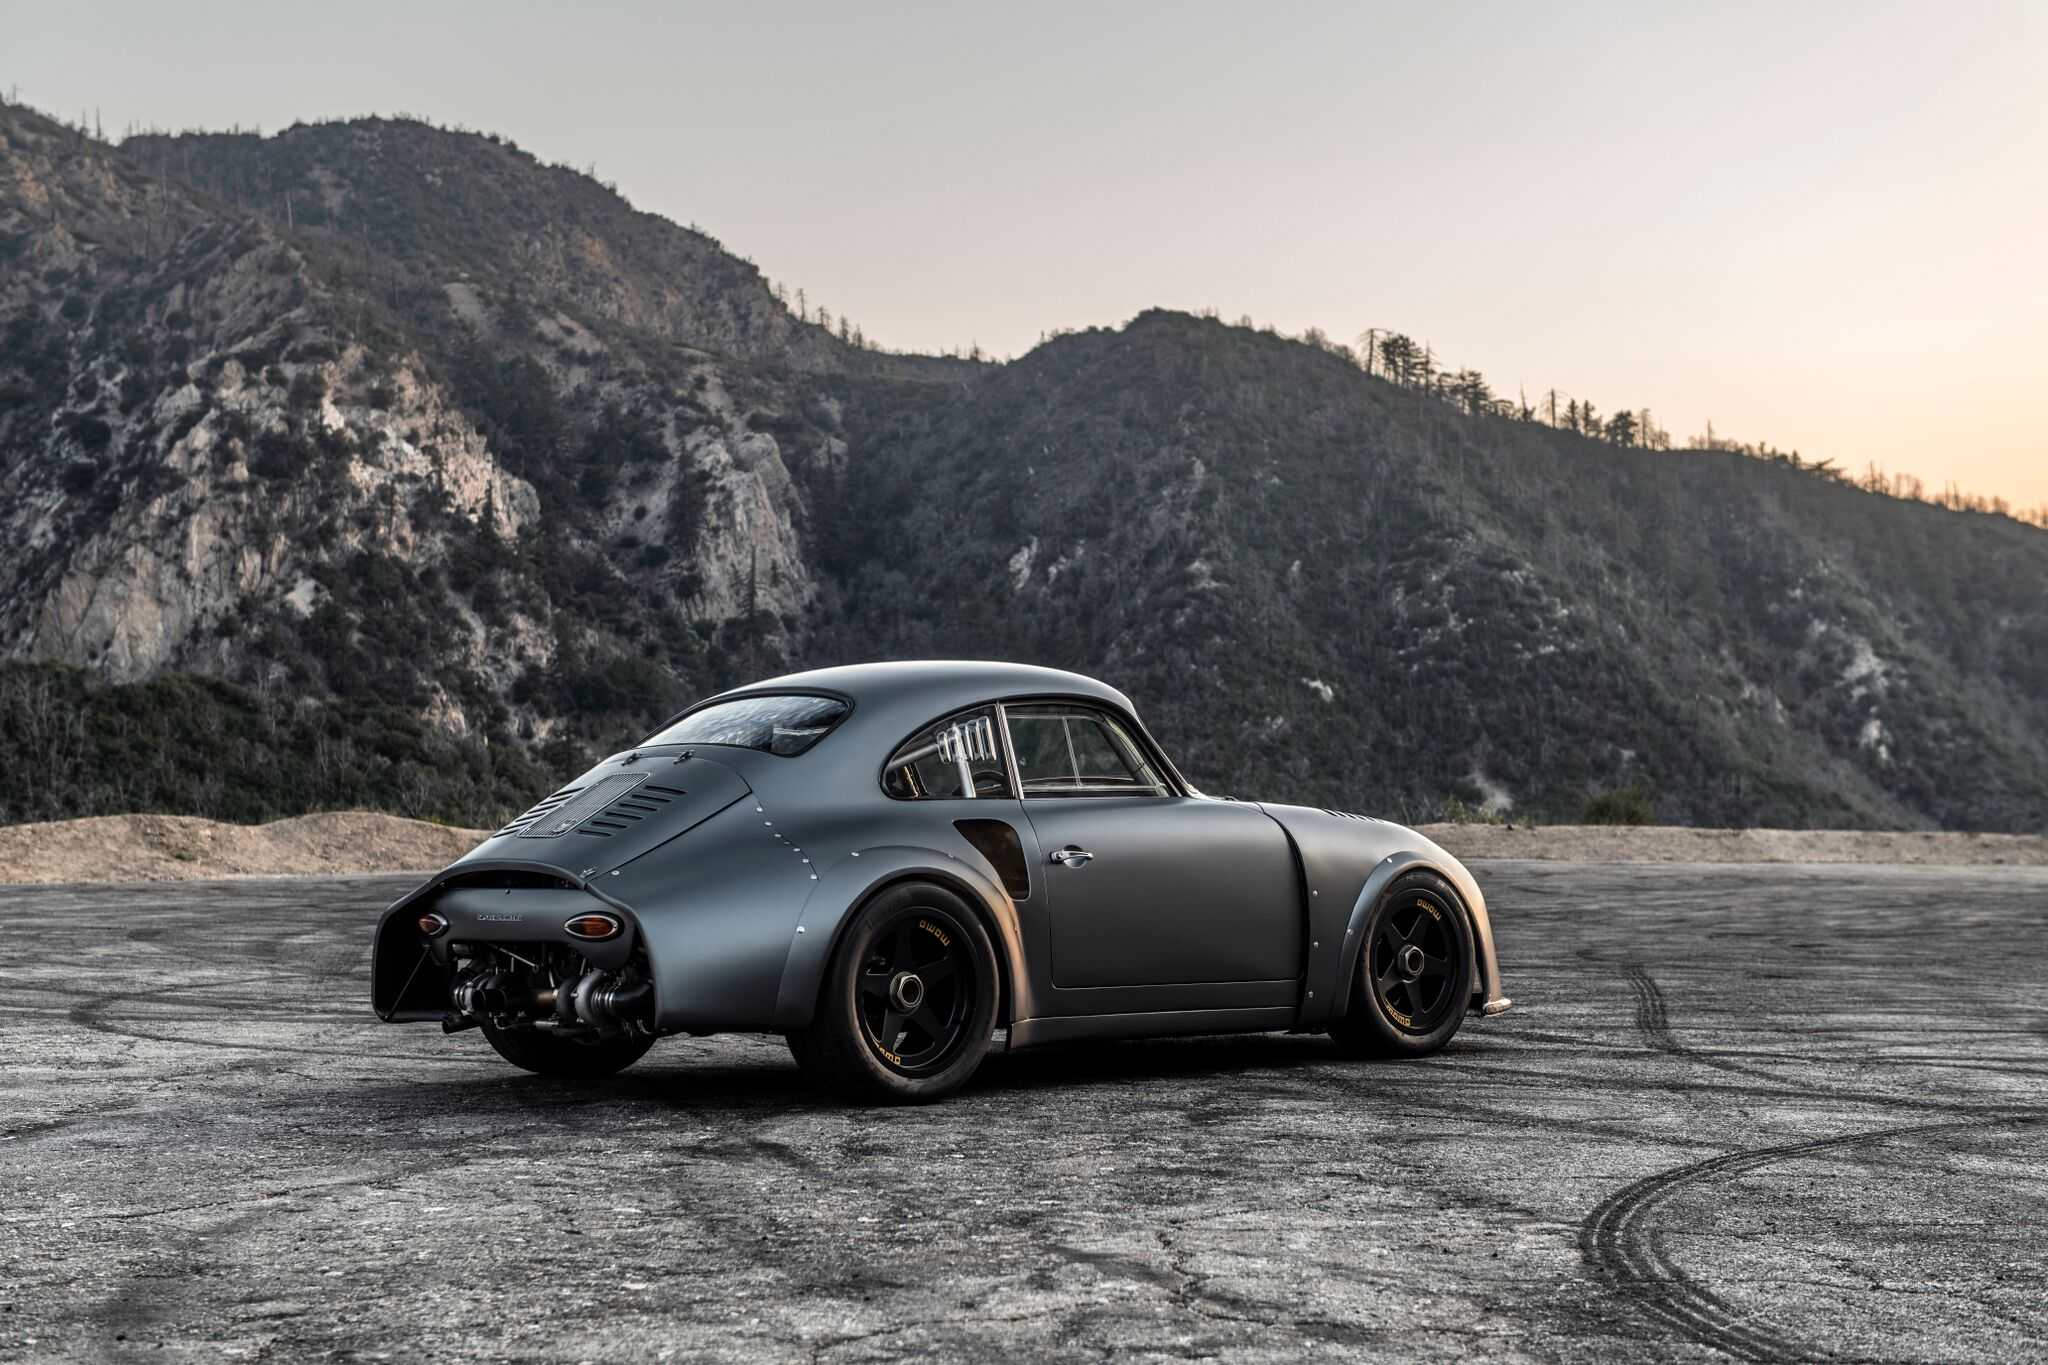 Porsche-356-RSR-Outlaw-by-Momo-and-Emory-motorsports-2